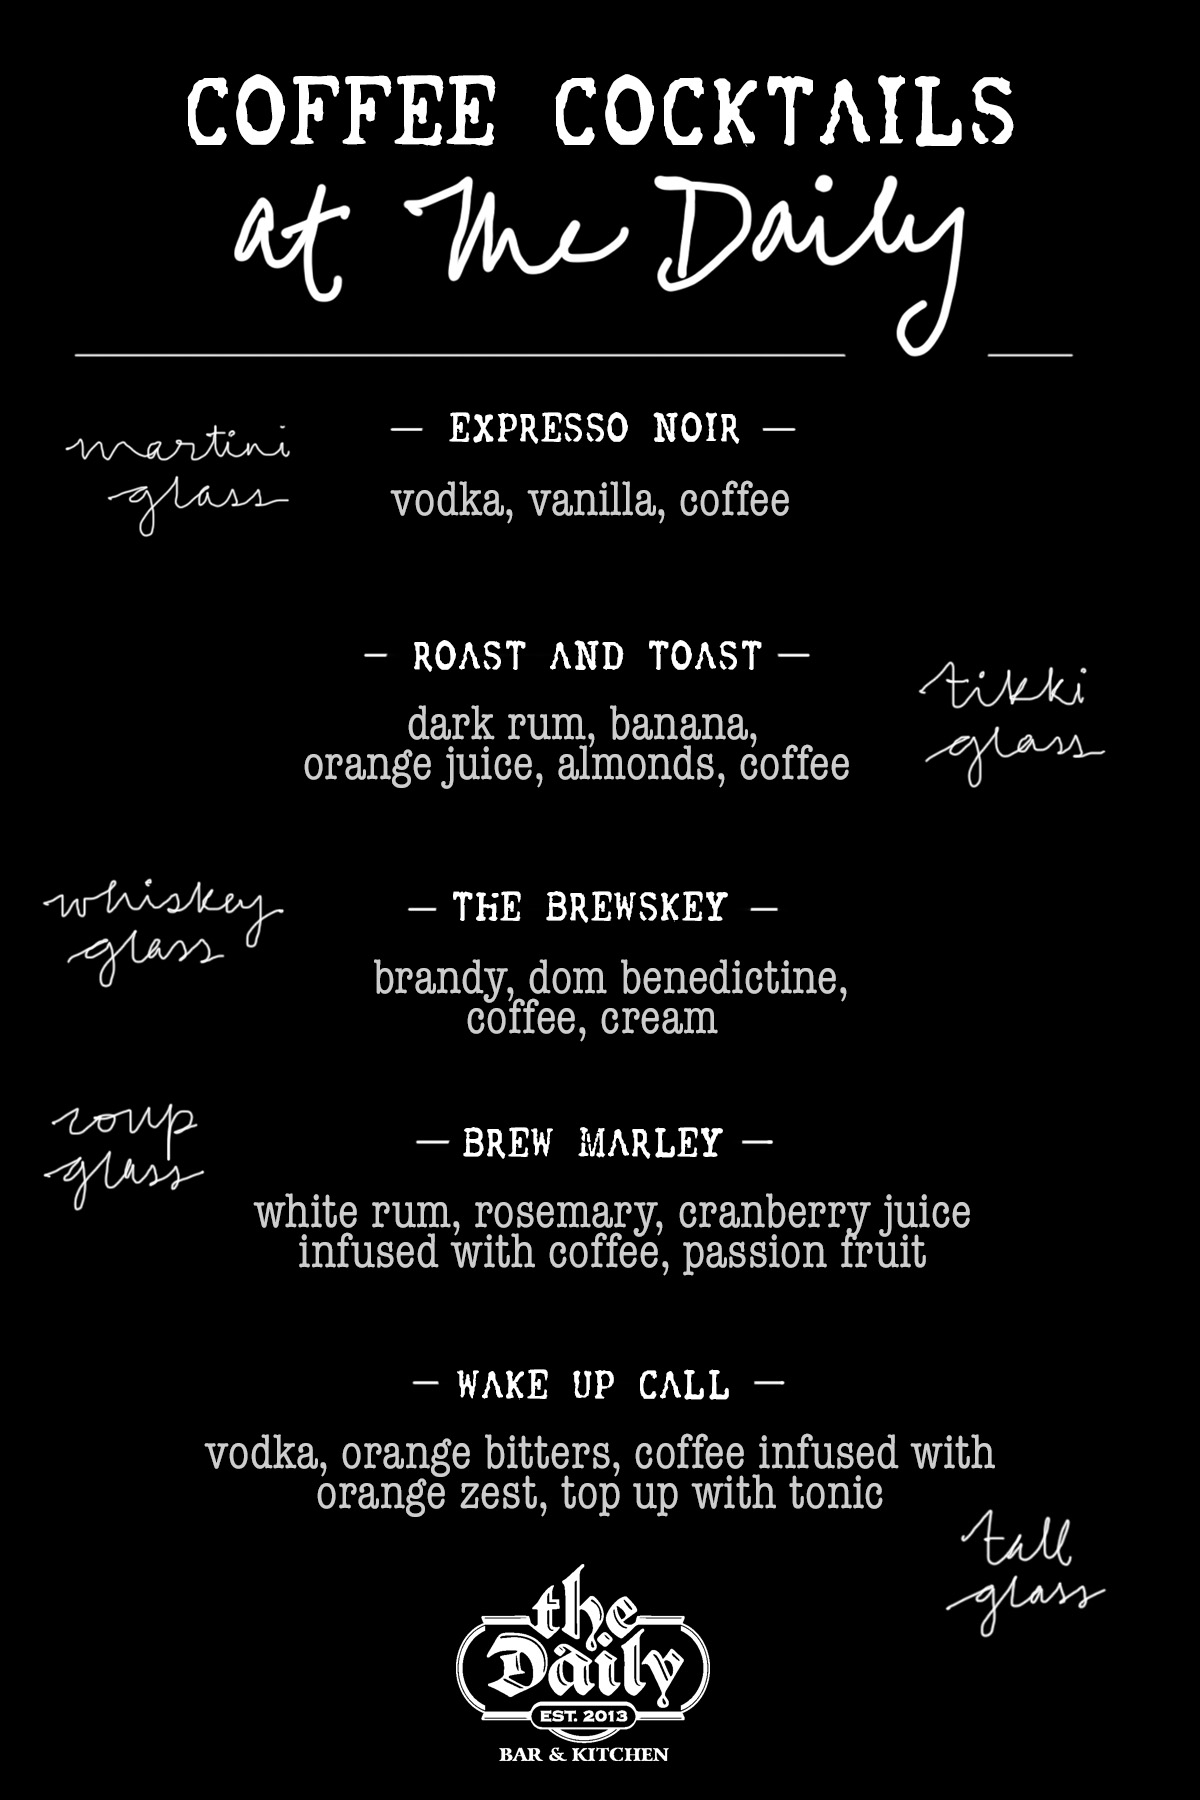 Coffee Cocktails At The Daily Bar & Kitchen